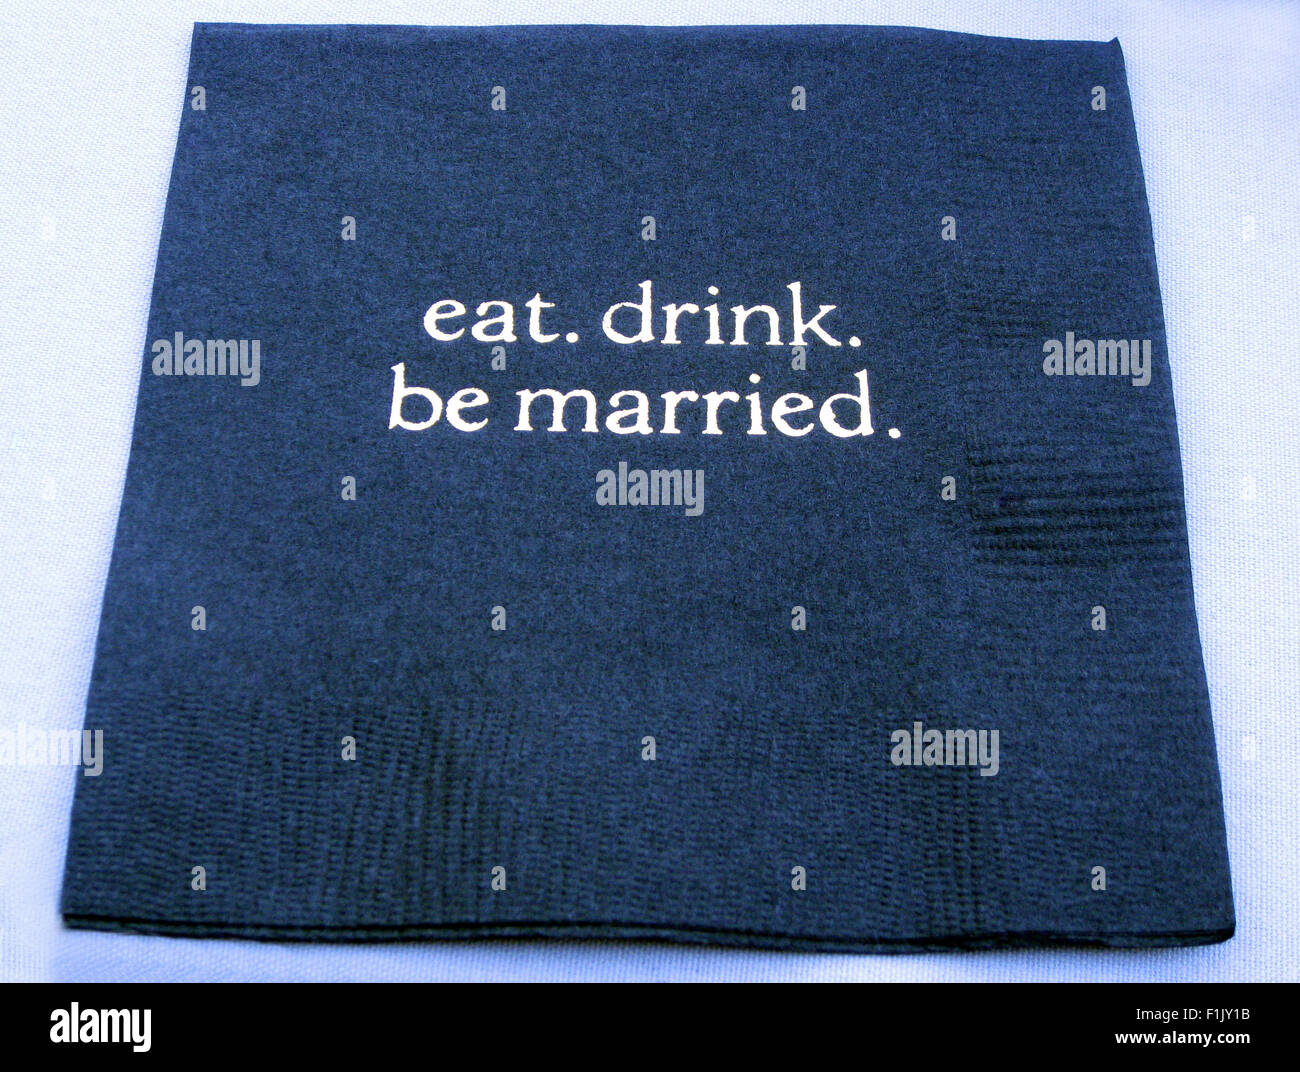 Small blue paper cocktail napkins are cleverly embossed with 'eat. drink. be married.' for a wedding reception - Stock Image